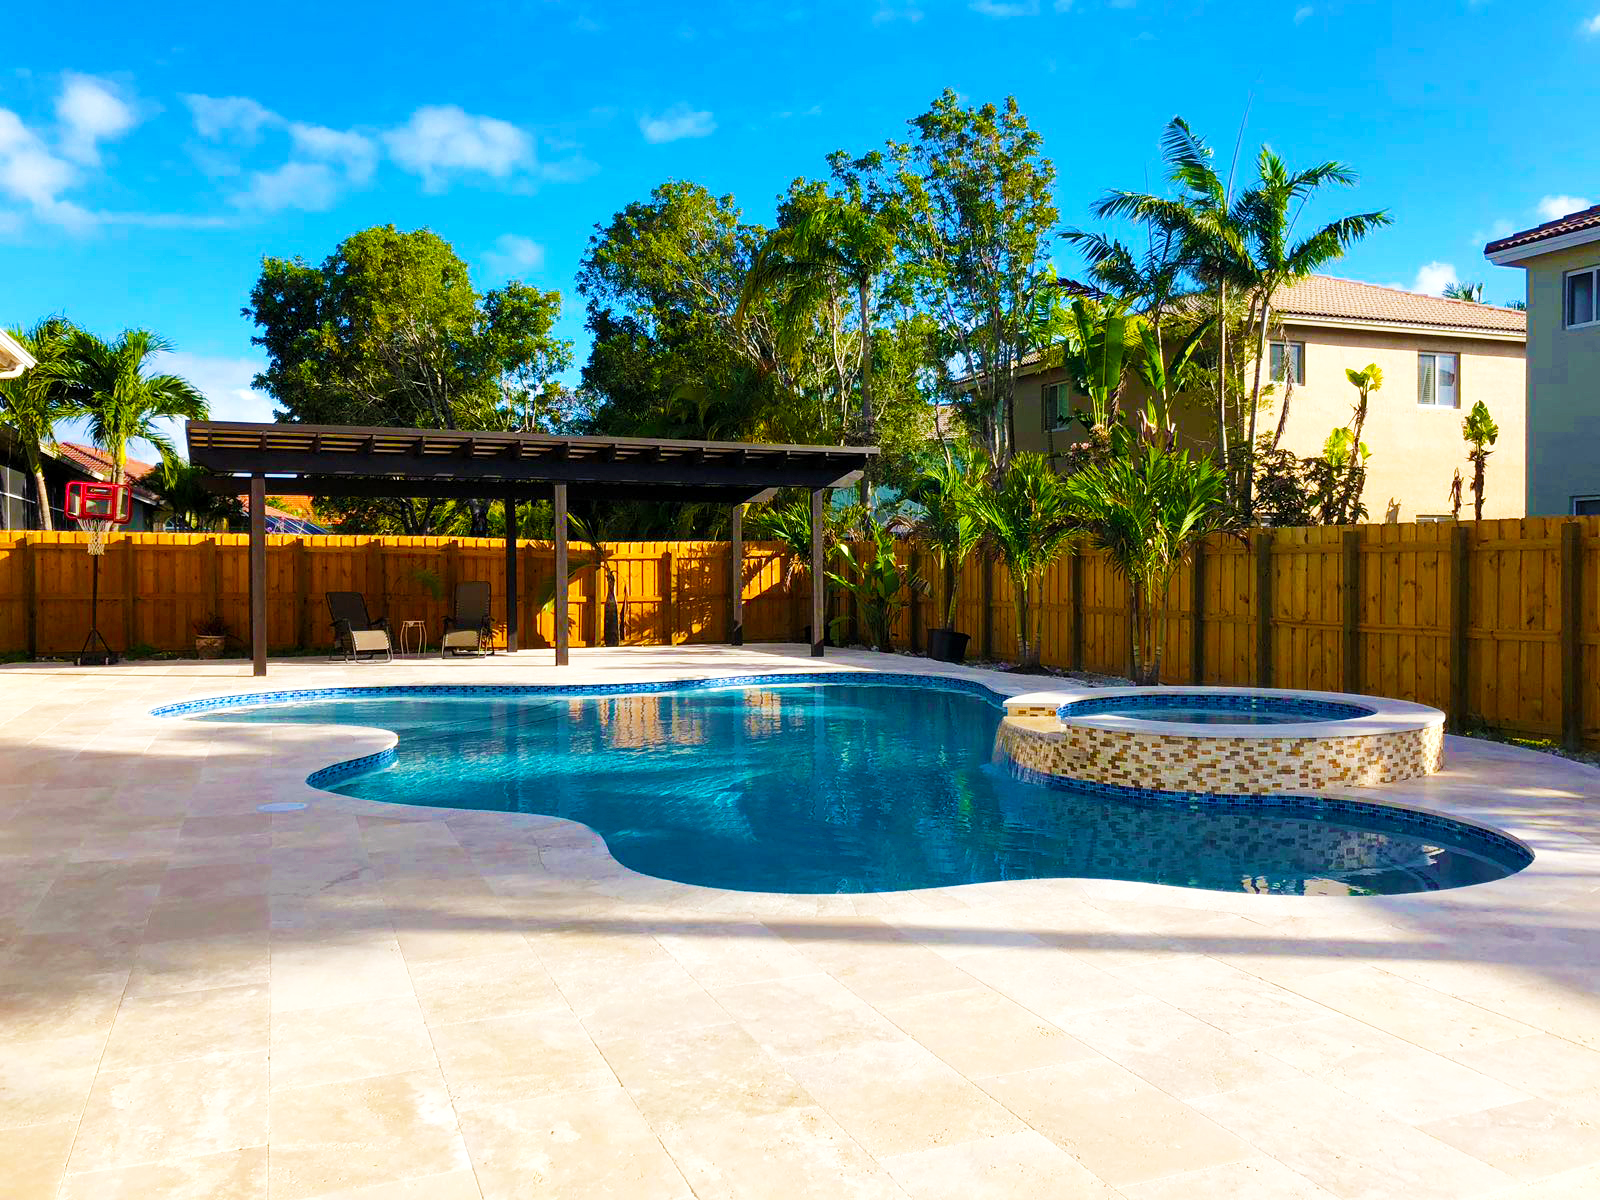 NEW POOL CONSTRUCTION -